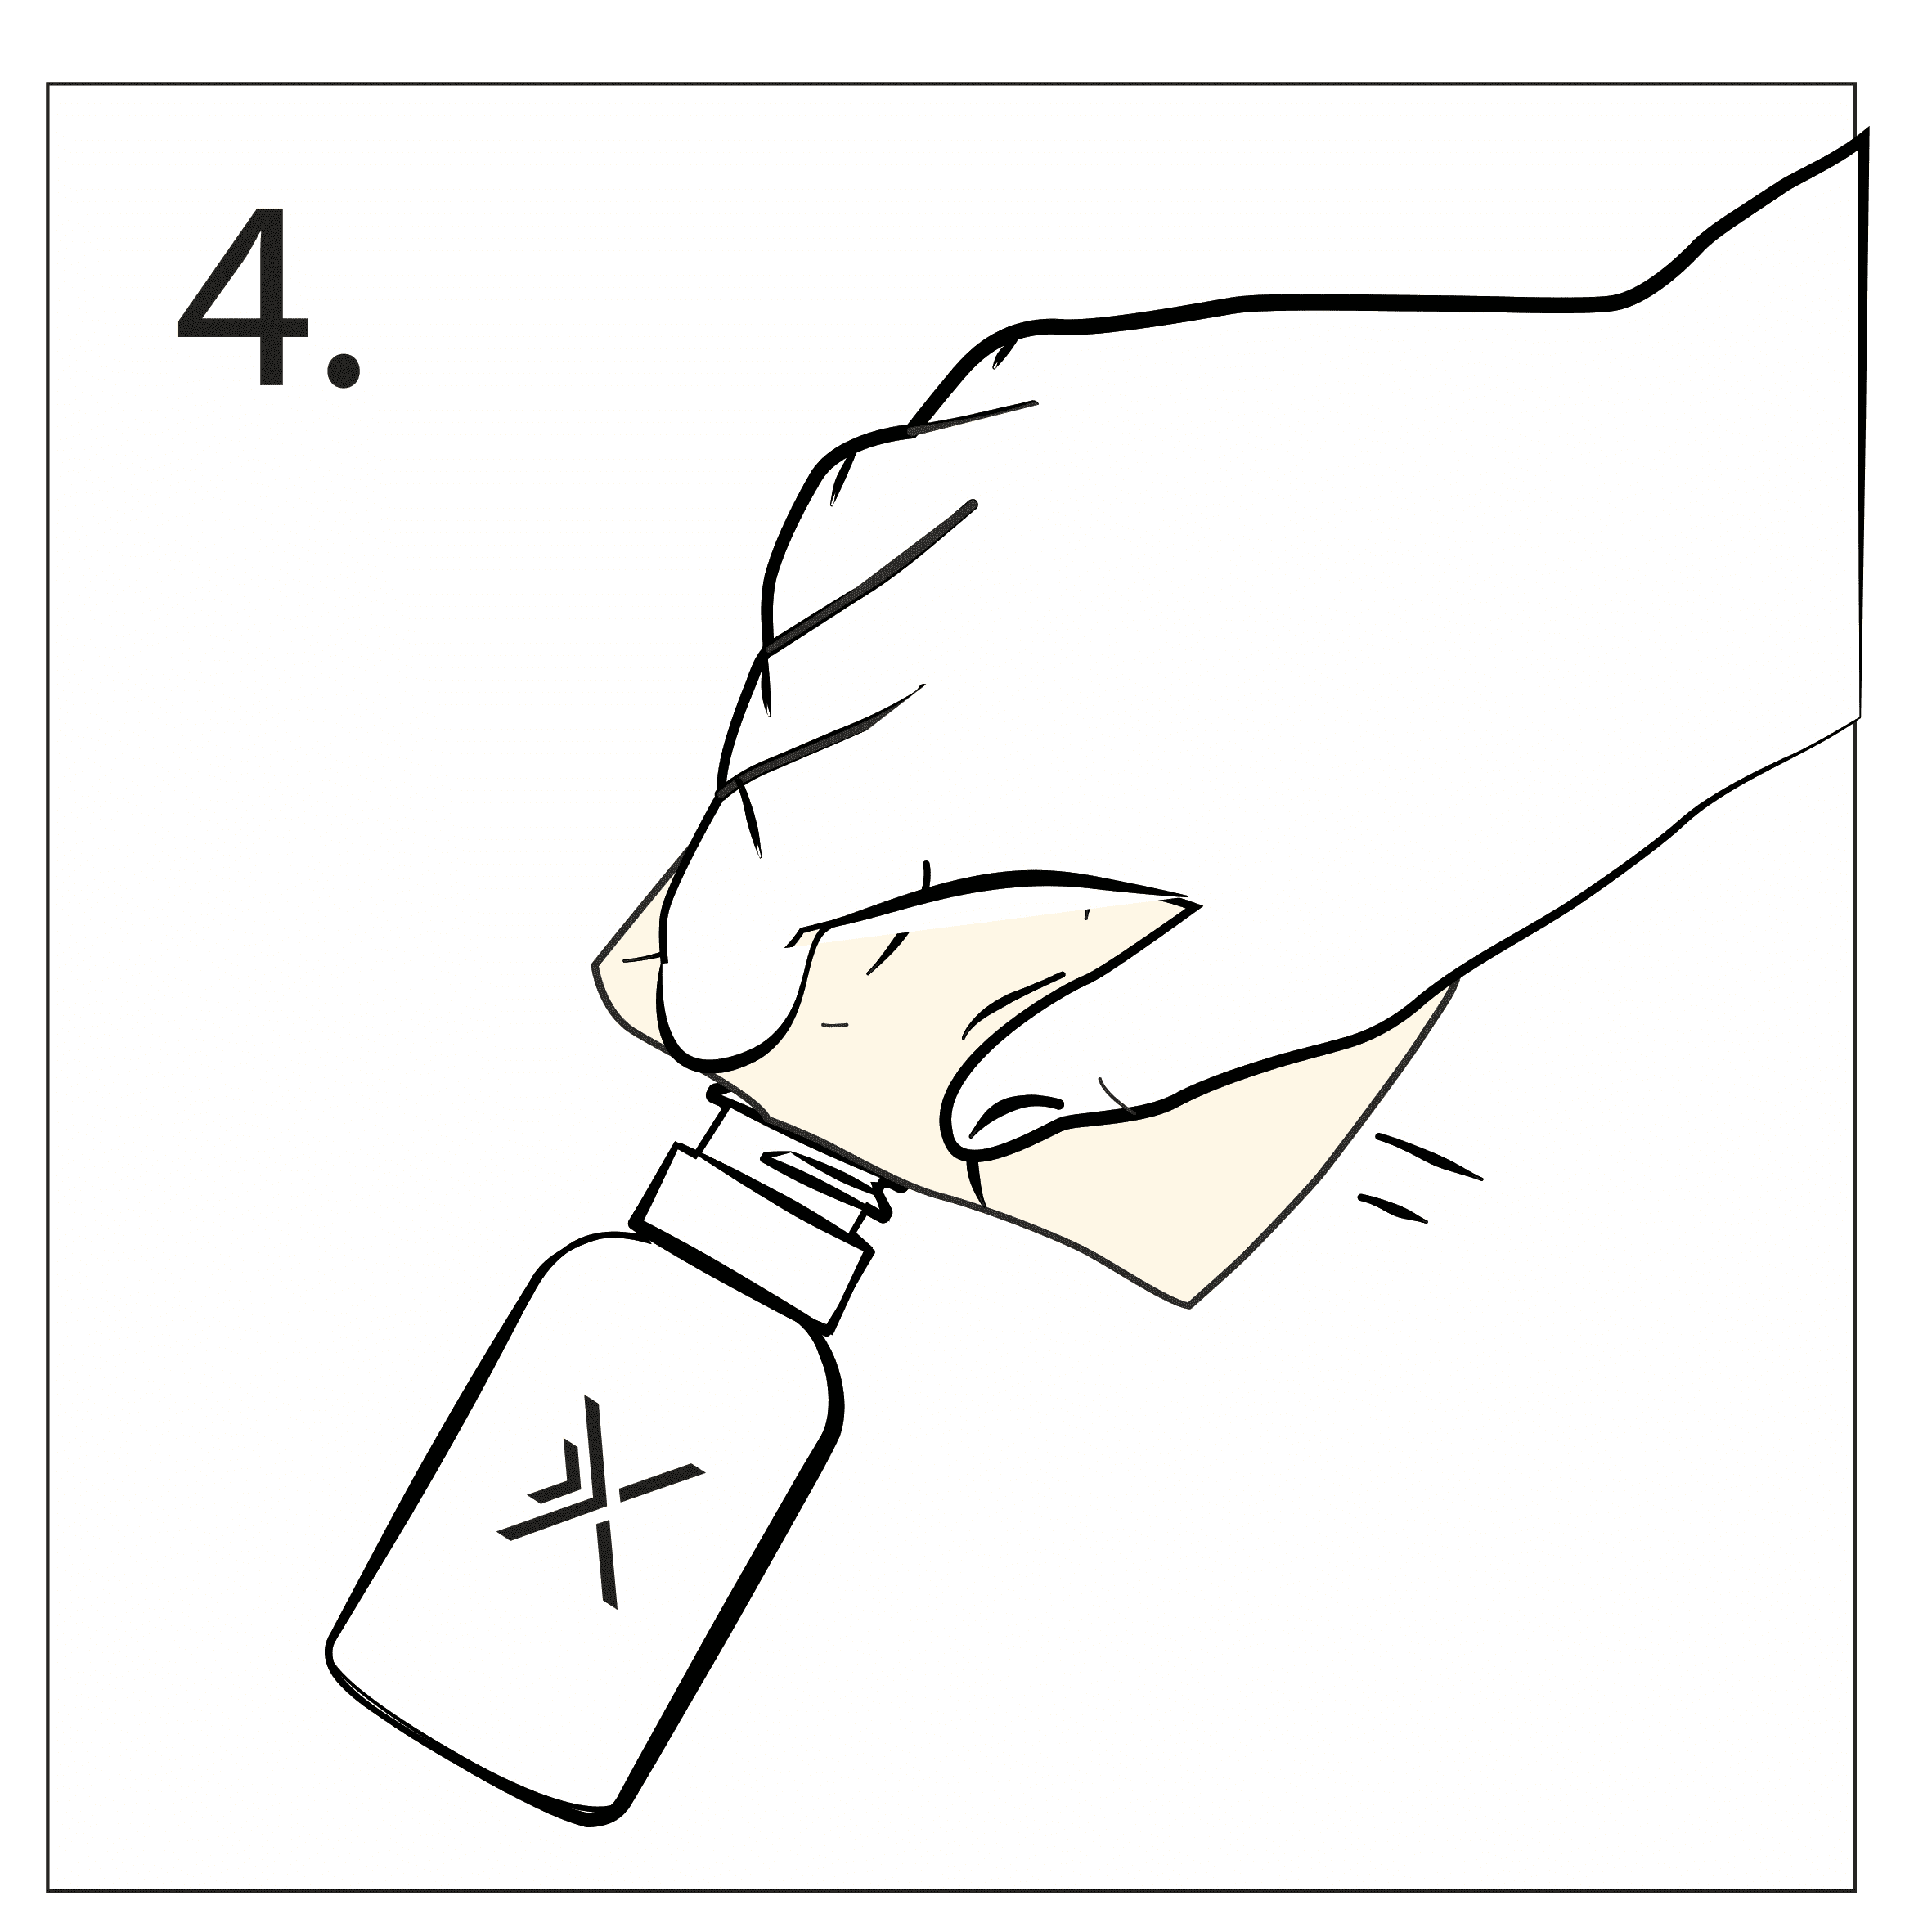 Wipe the Taffix bottle with a clean towel